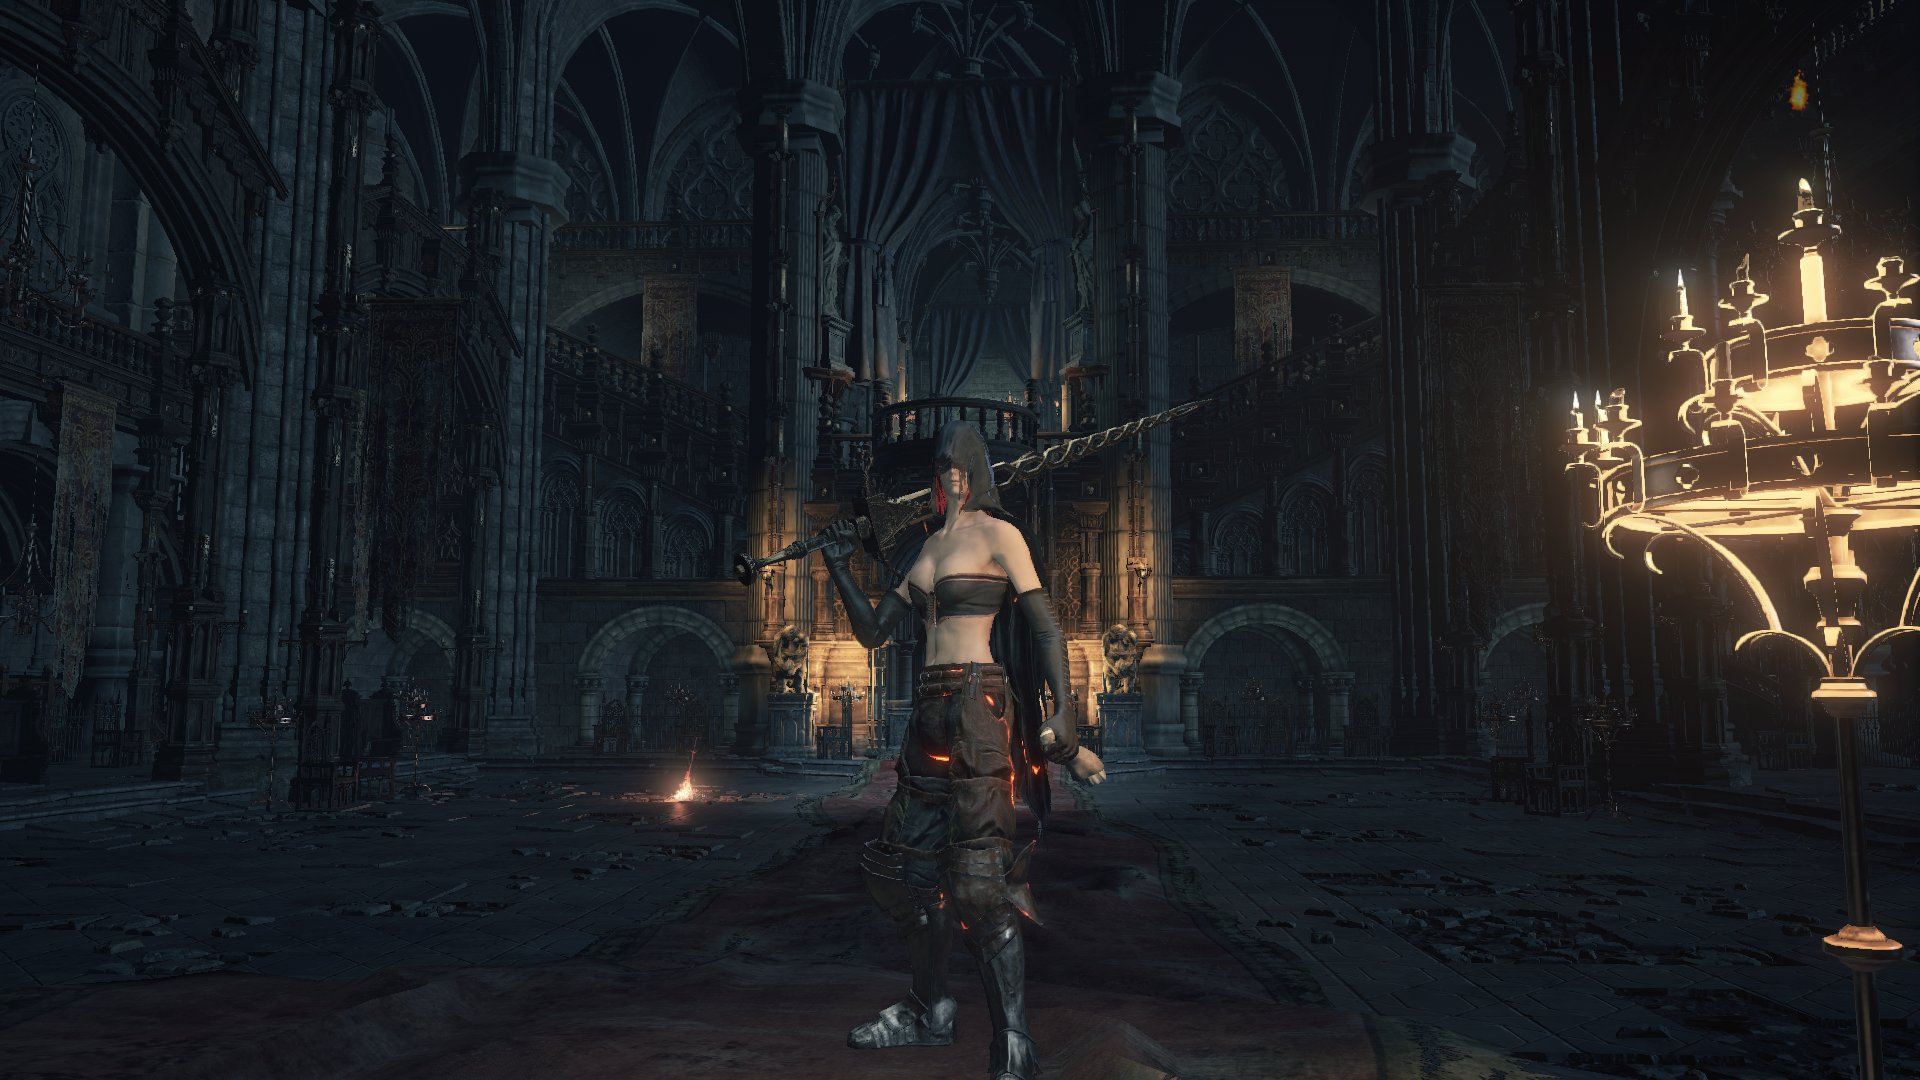 10 DIFFERENT FEMALE FASHION SOULS CHALLENGE (X-Post from r